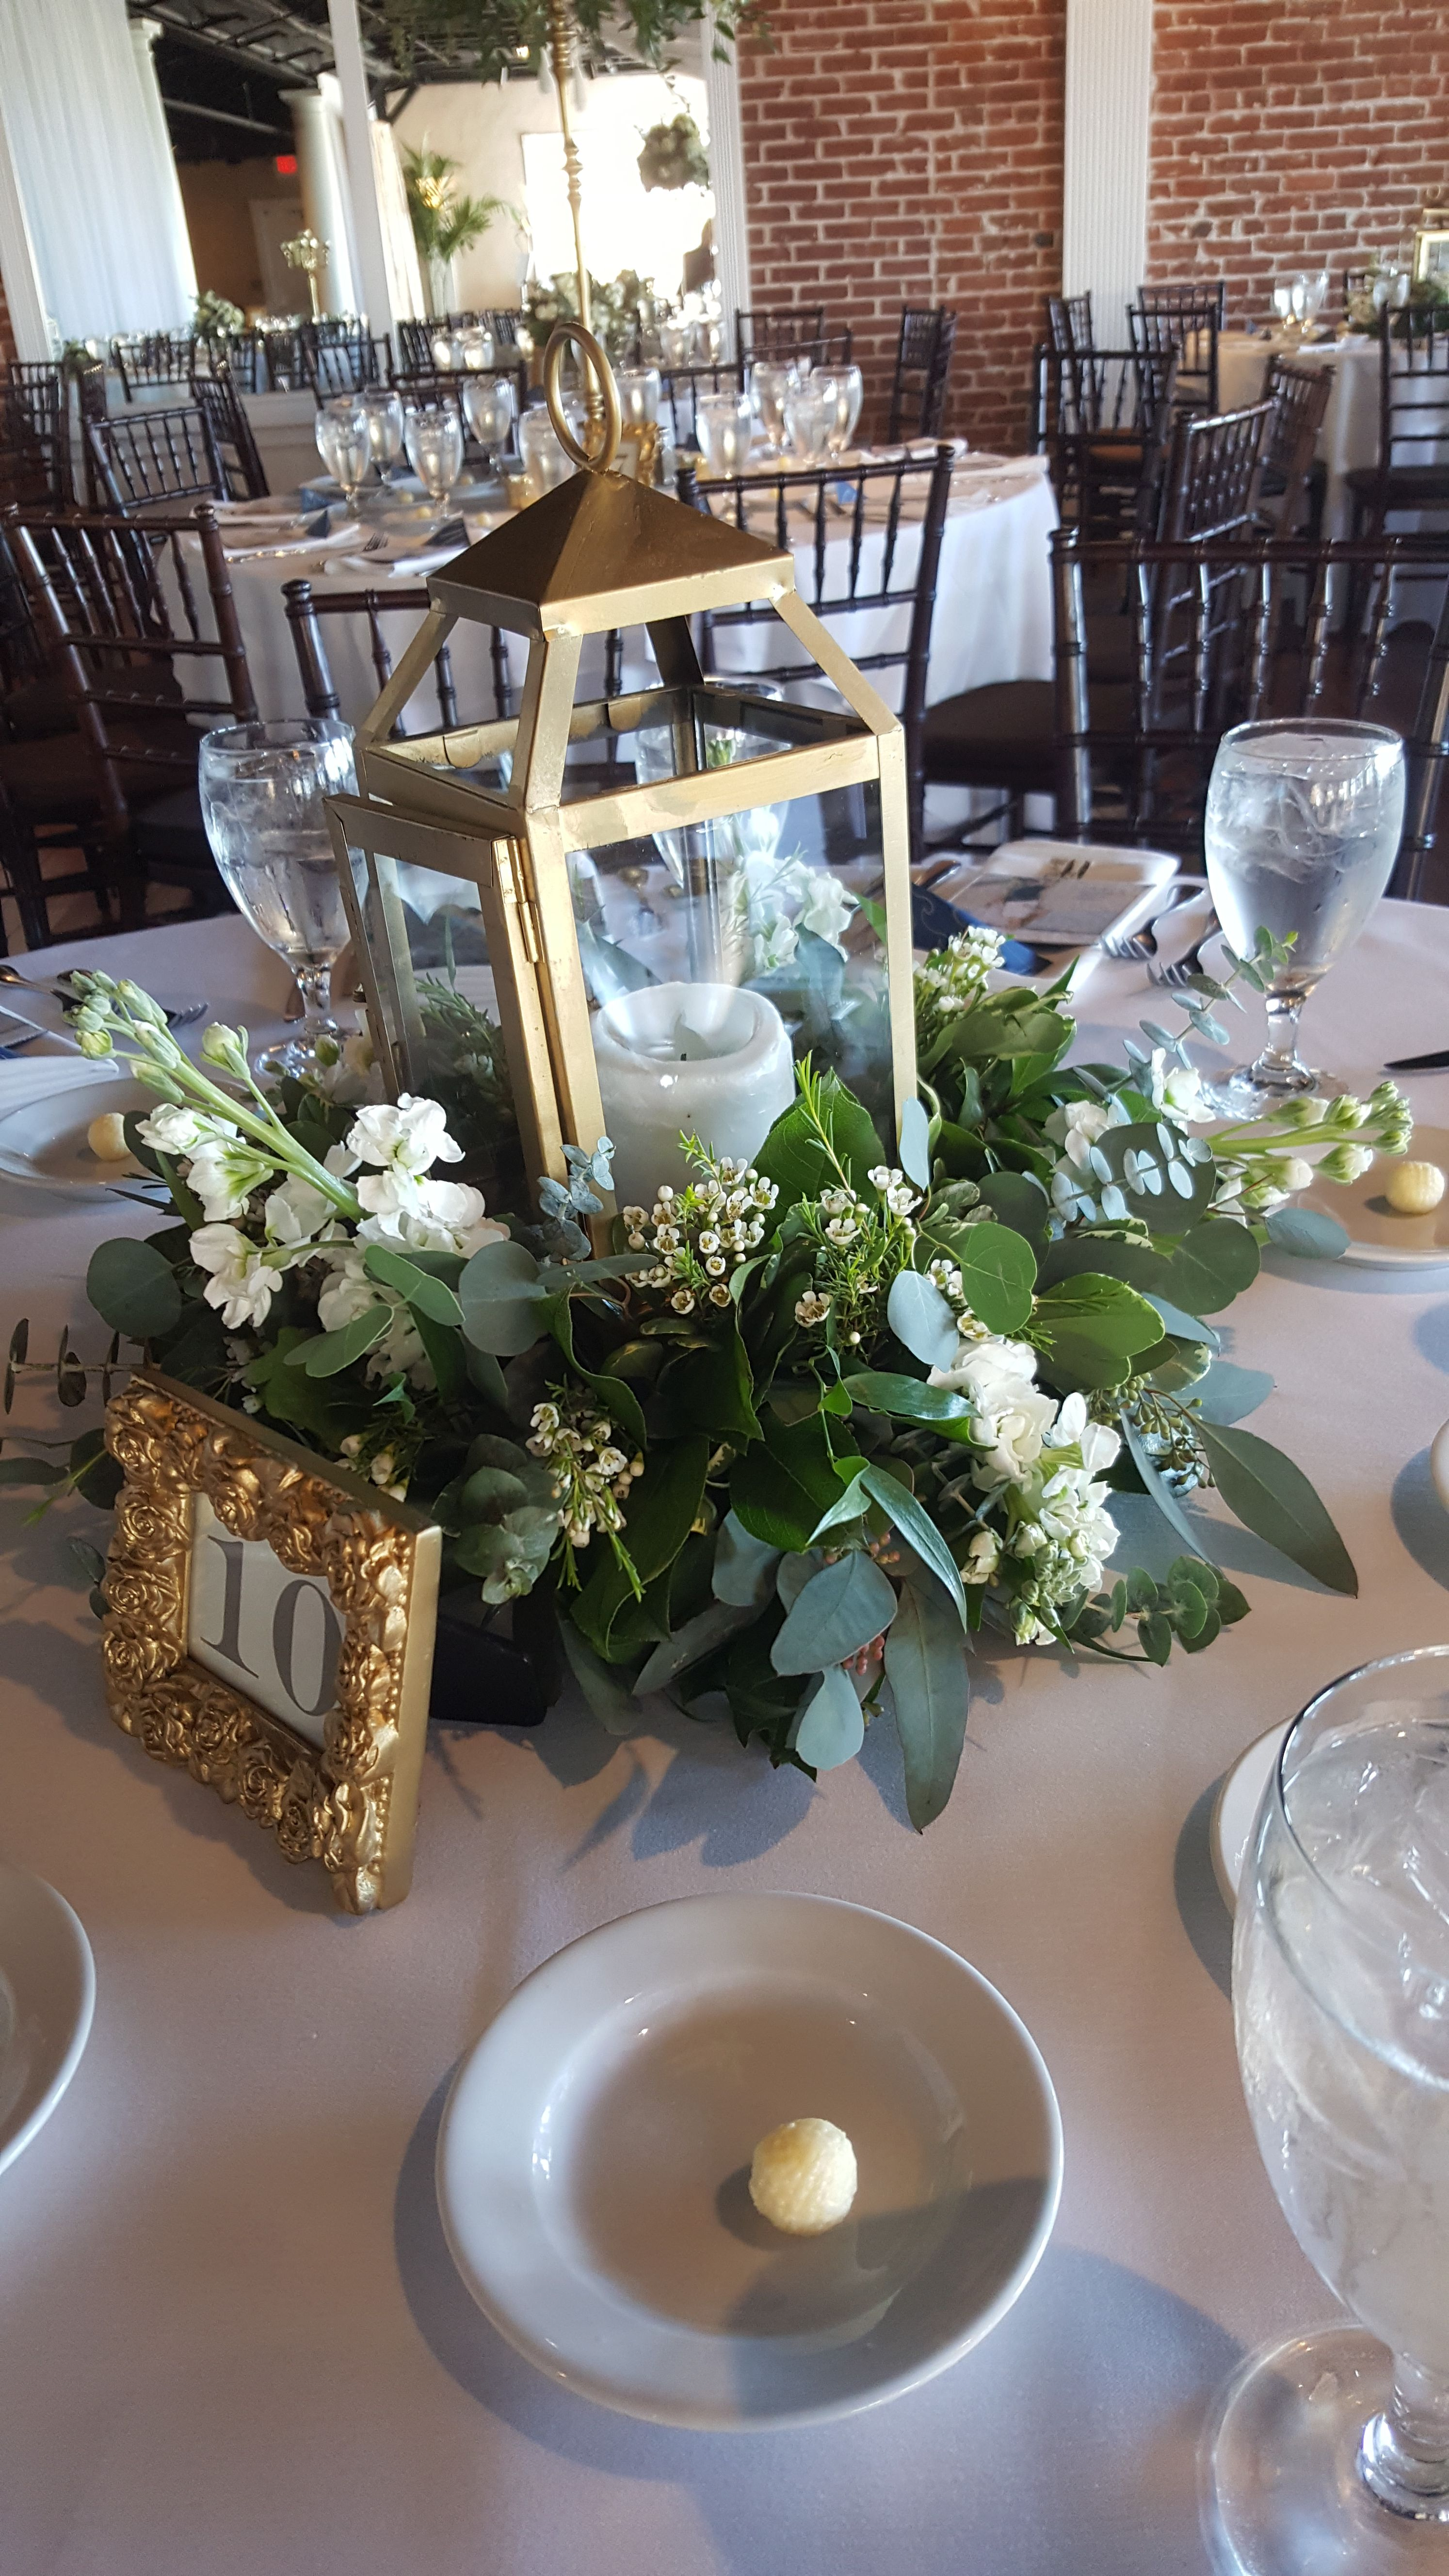 Gold lantern centerpiece with greenery at base